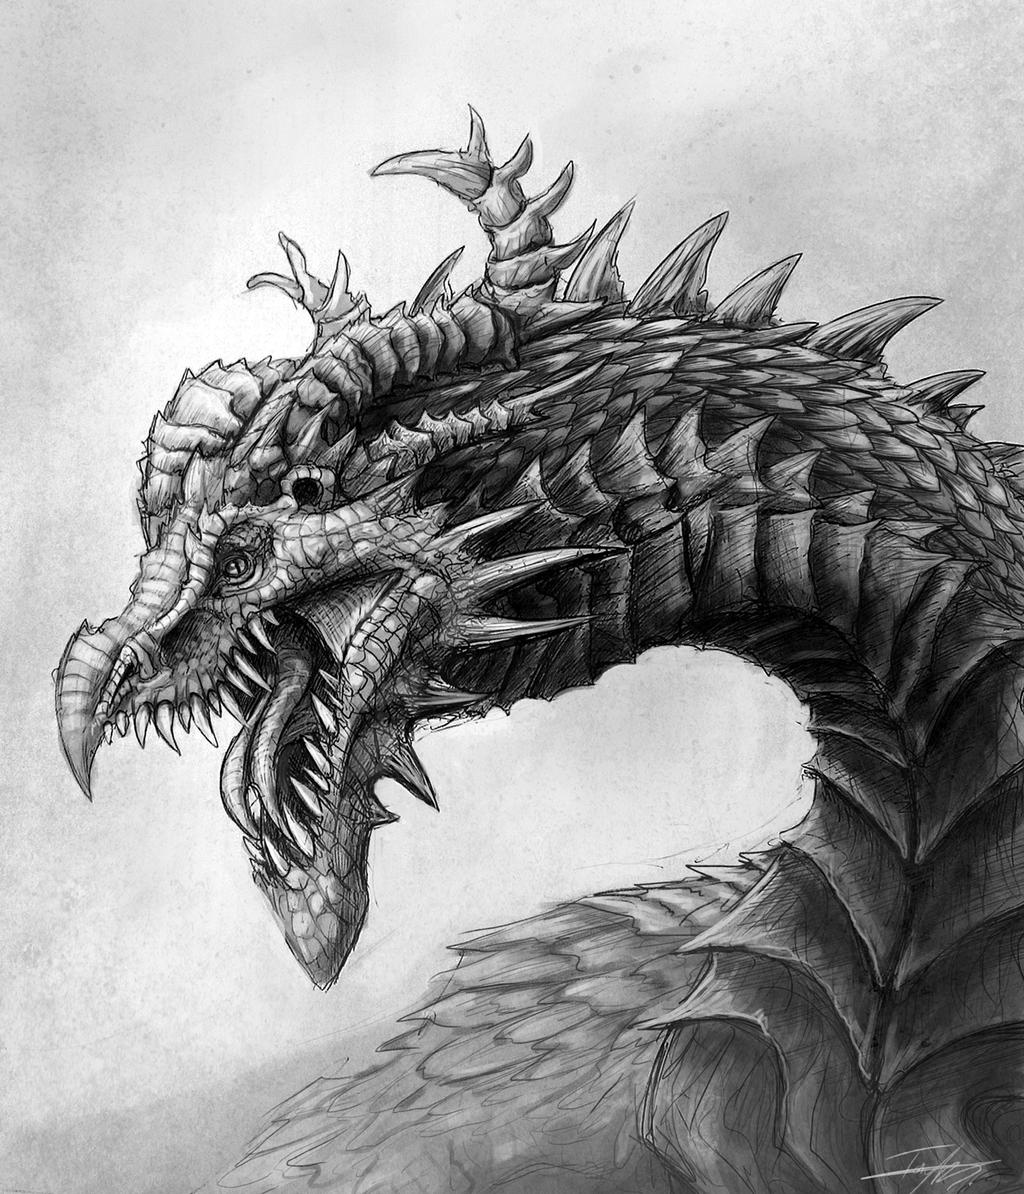 spiked dragon by ruth tay on deviantart